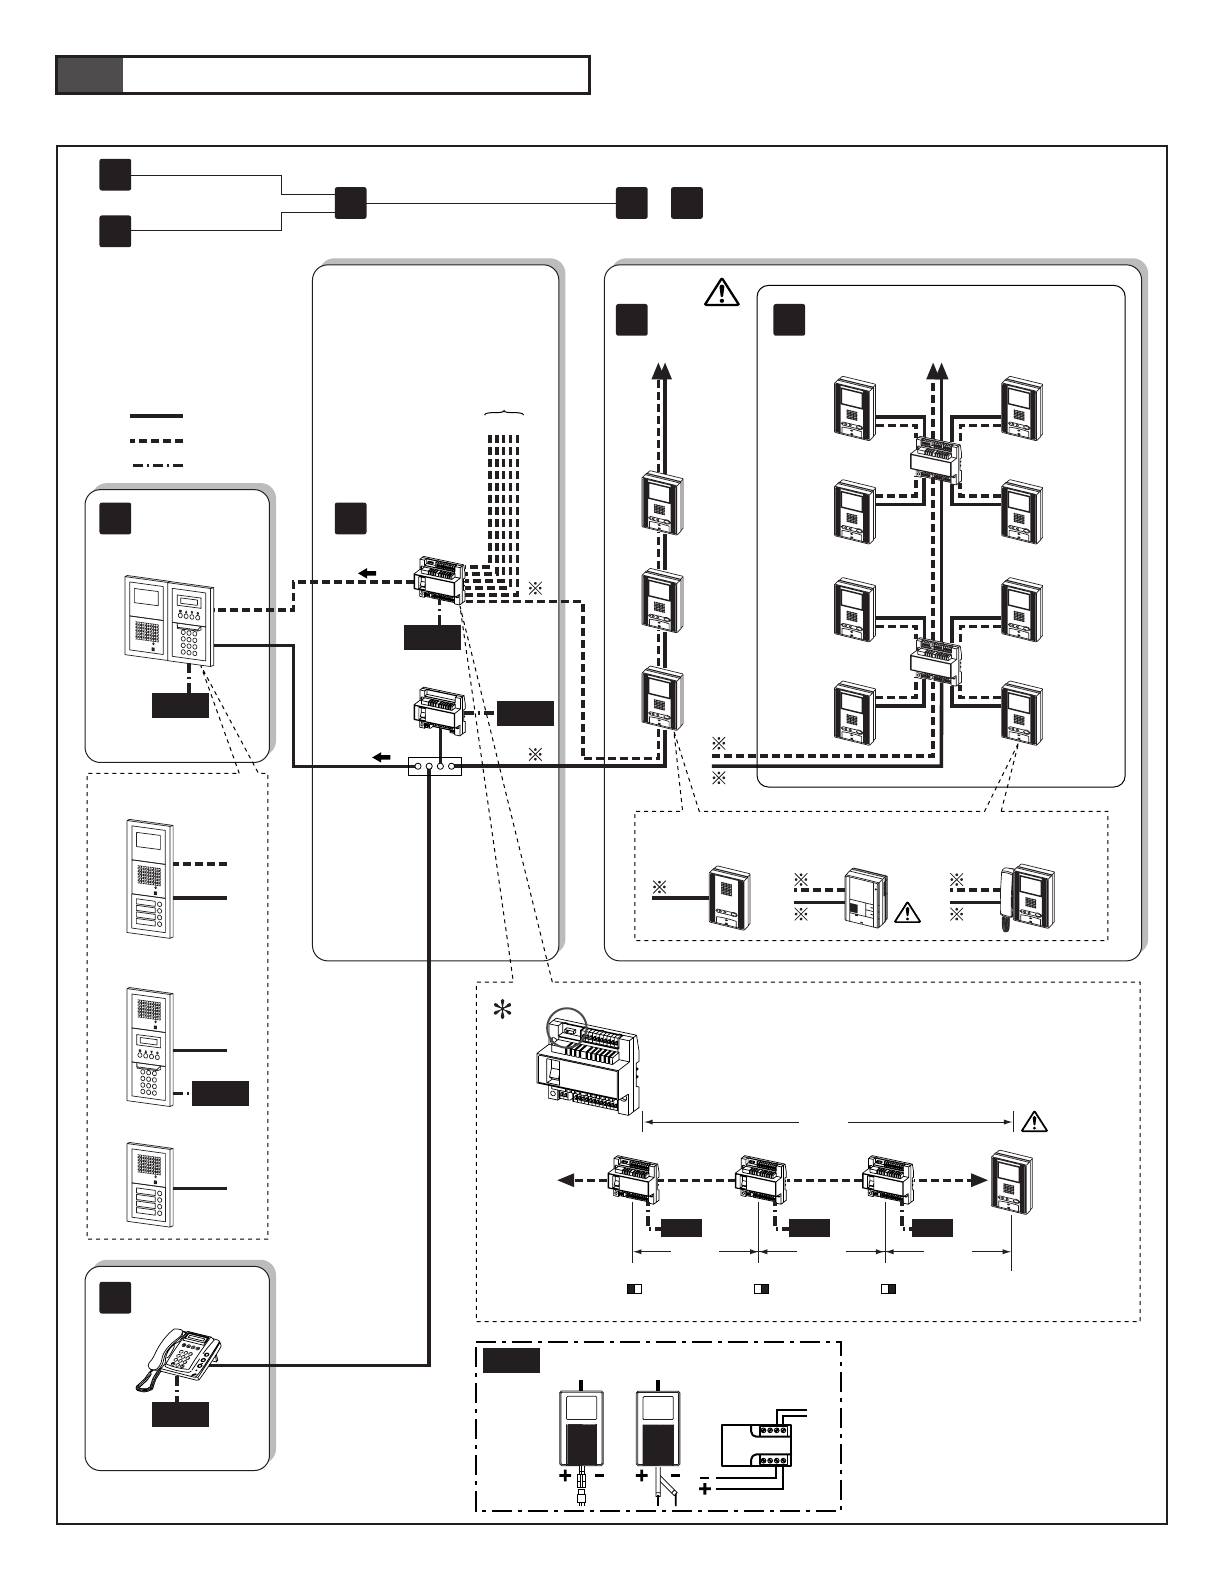 Aiphone Intercom Wiring Diagram 31 Images Systems D75e15be A0ca 4432 9d25 7092055fdc5f Bg3 Page 3 Of System 0207 Aic User Guide